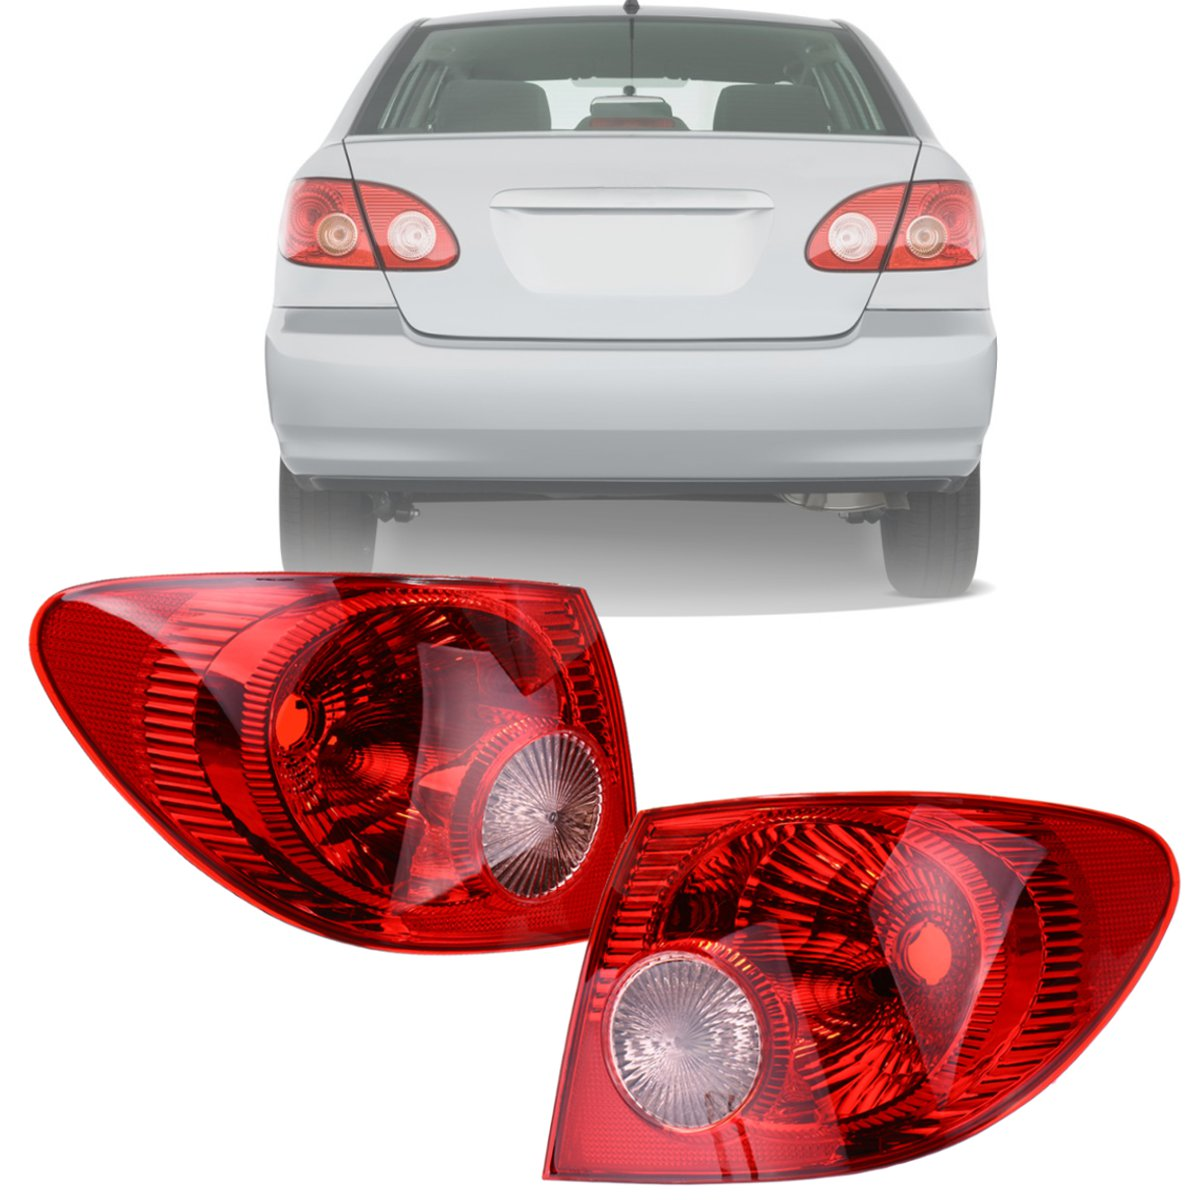 1 Pair Car Tail Rear Brake Light Lamp With No Bulb For Toyota Corolla 2005 2006 2007 2008 8156002290 Housing Styling